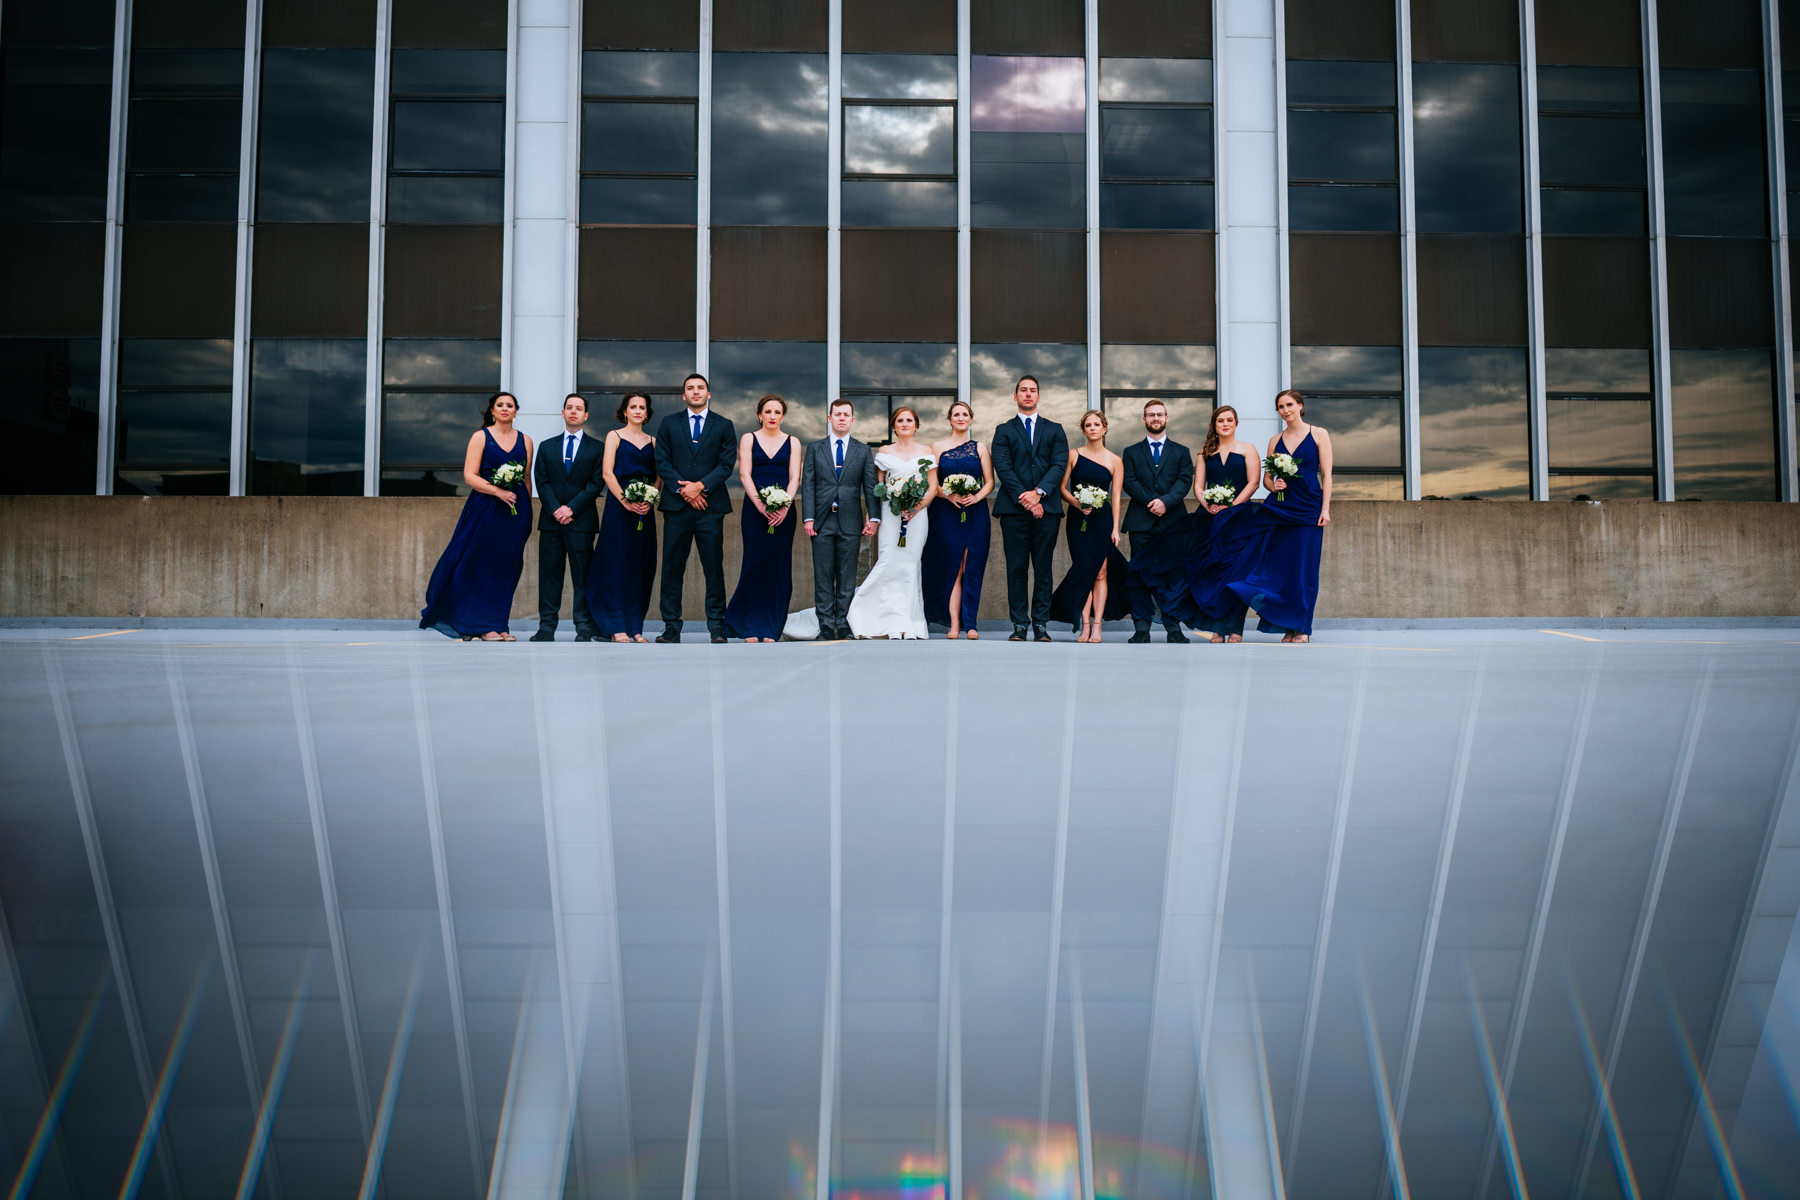 creative wedding party photograpy